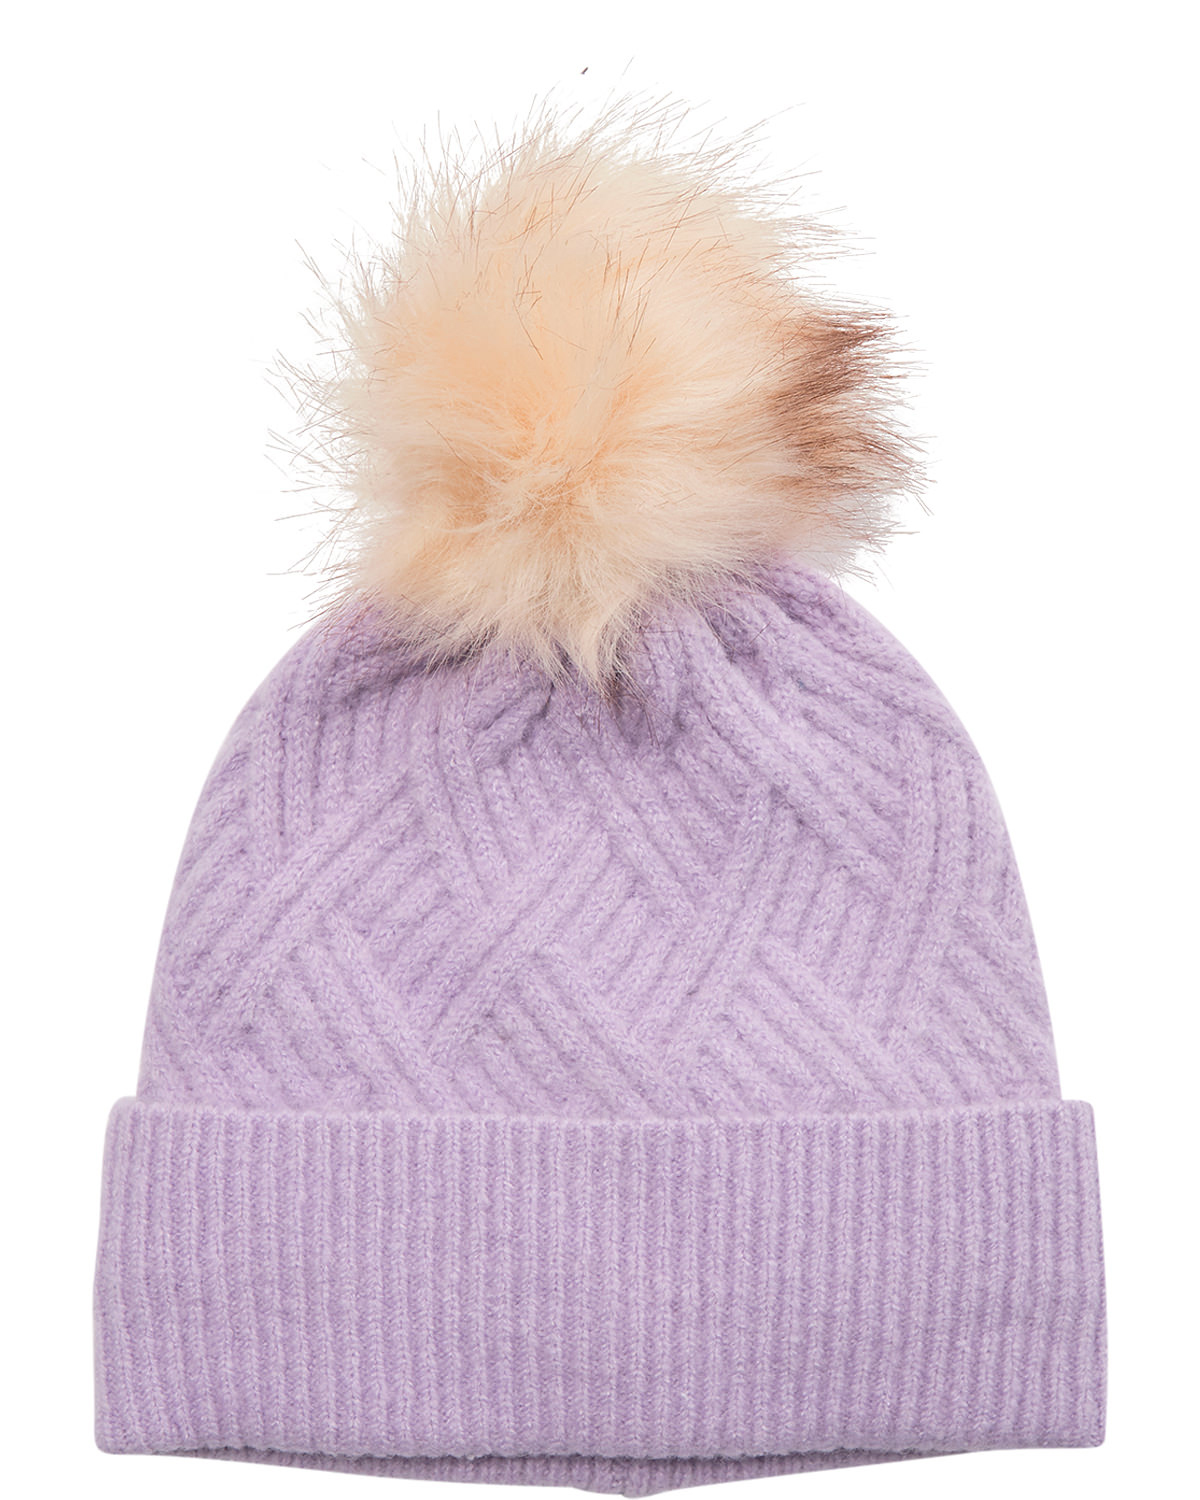 Nümph Cable Knitted Hat, lilla lue med dusk